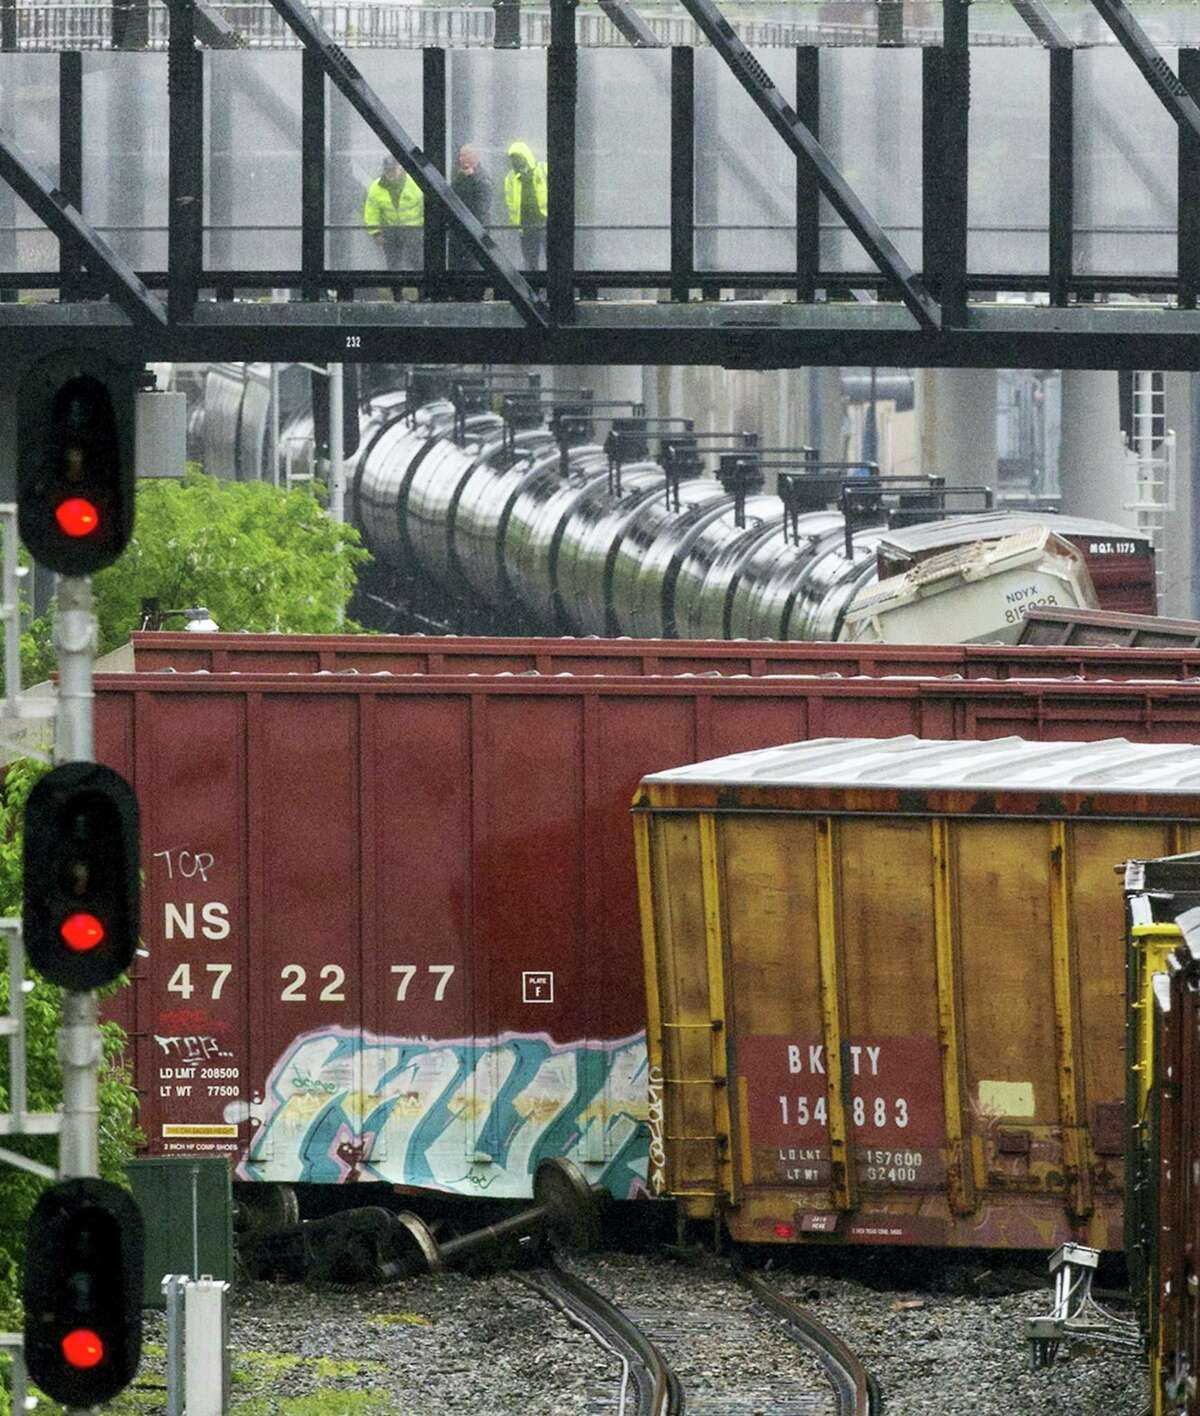 Officials look down from a Metro pedestrian bridge at several overturned train cars after a CSX freight train derailed in Washington on May 1, 2016.